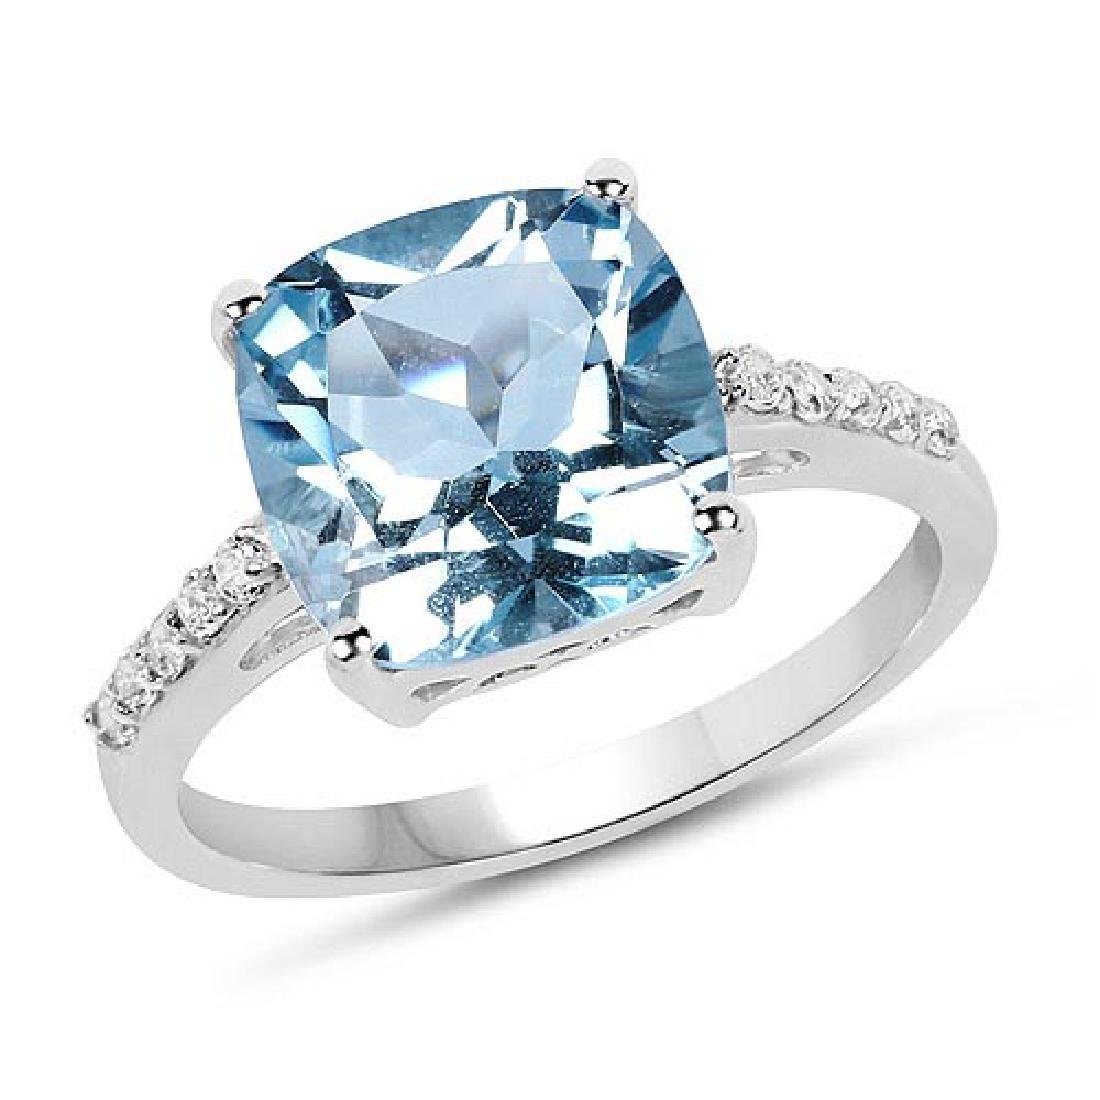 5.33 Carat Genuine Blue Topaz and White Topaz .925 Ster